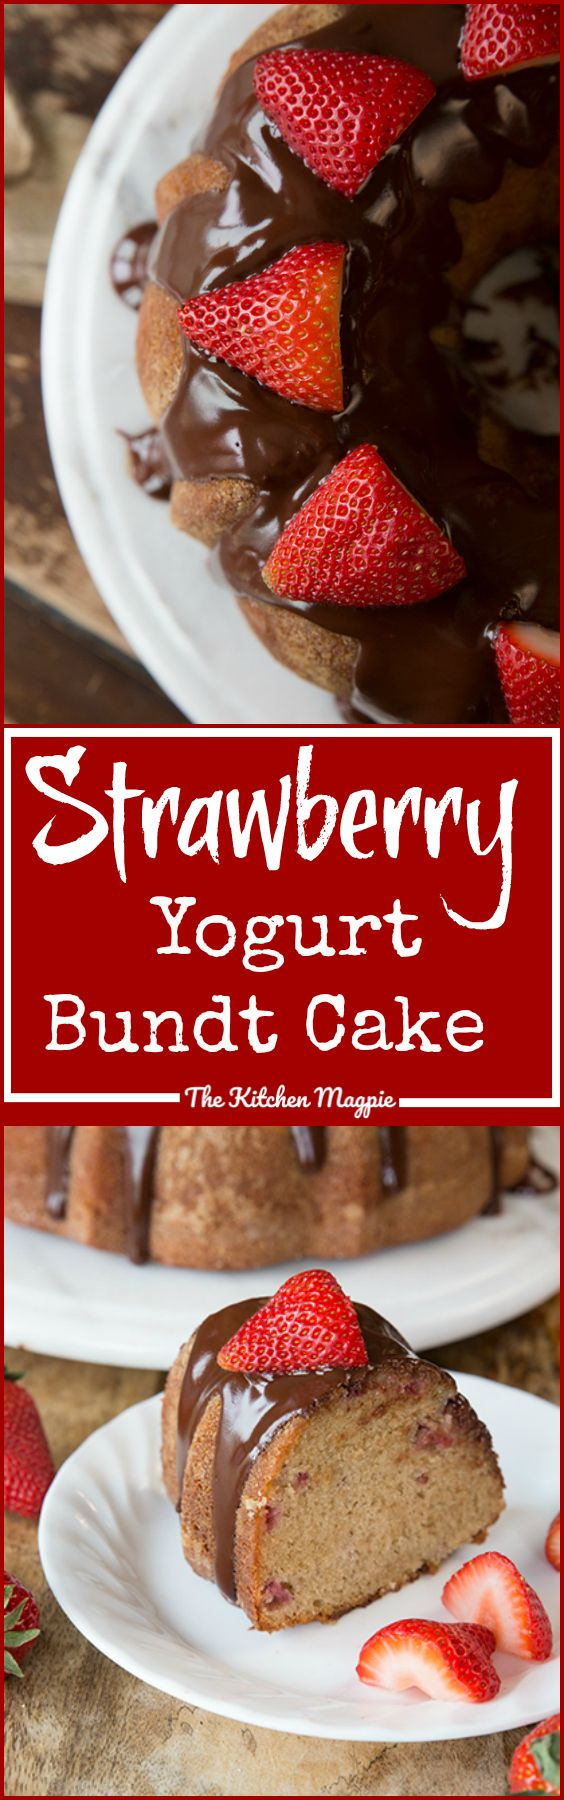 Chocolate Glazed Strawberry Yogurt Bundt Cake from @kitchenmagpie